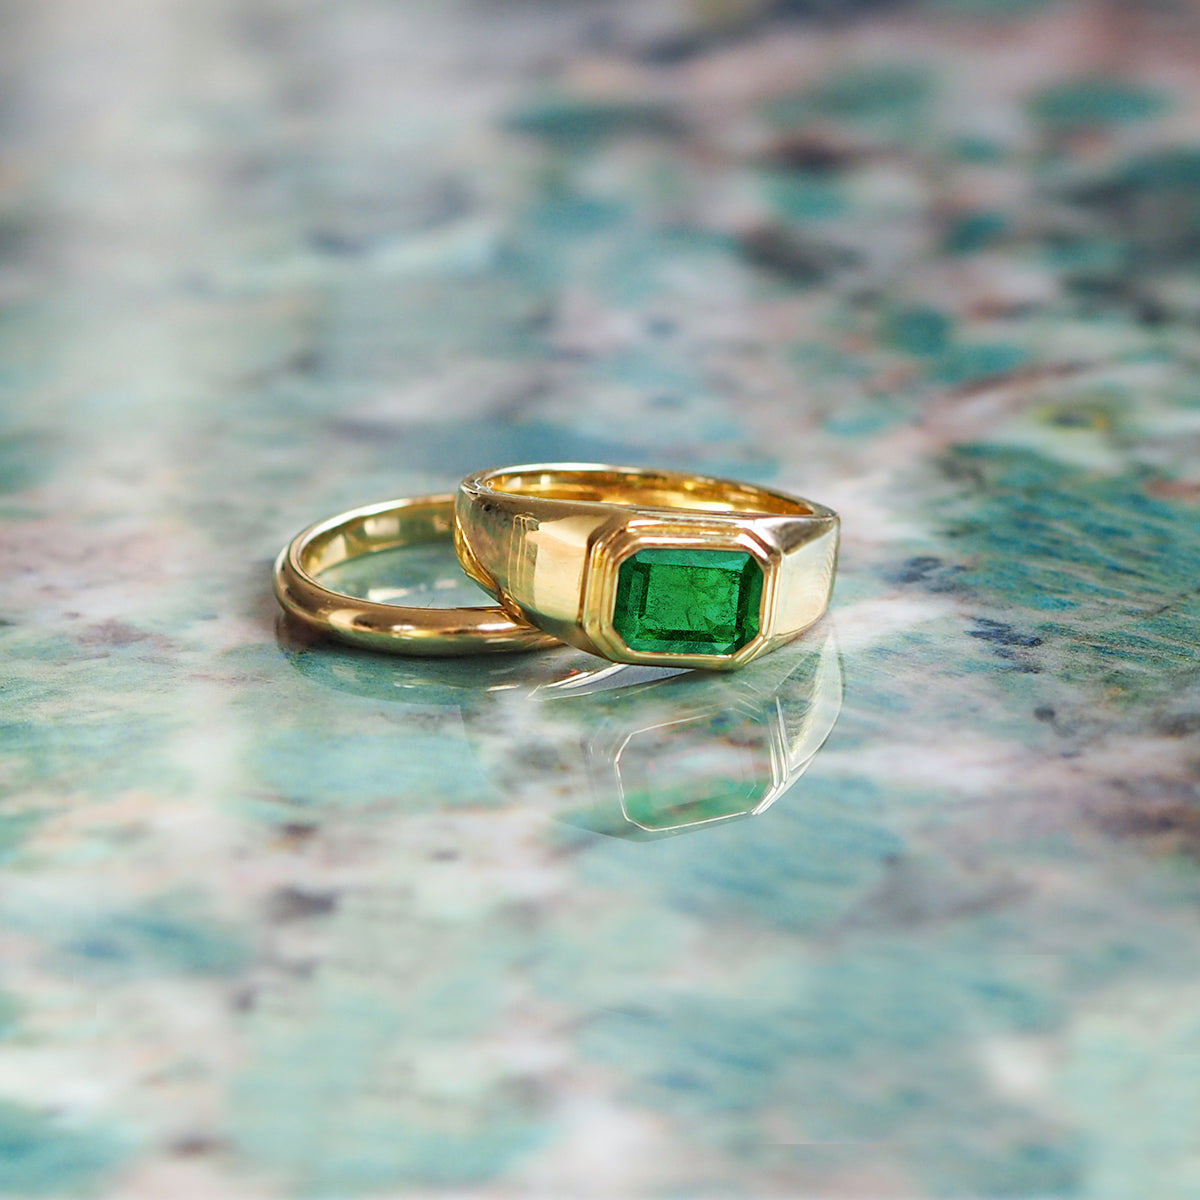 Ring / Rings / Emerald / Engagement Ring / How to choose an Emerald / Emerald Education / What you need to know when buying an Emerald